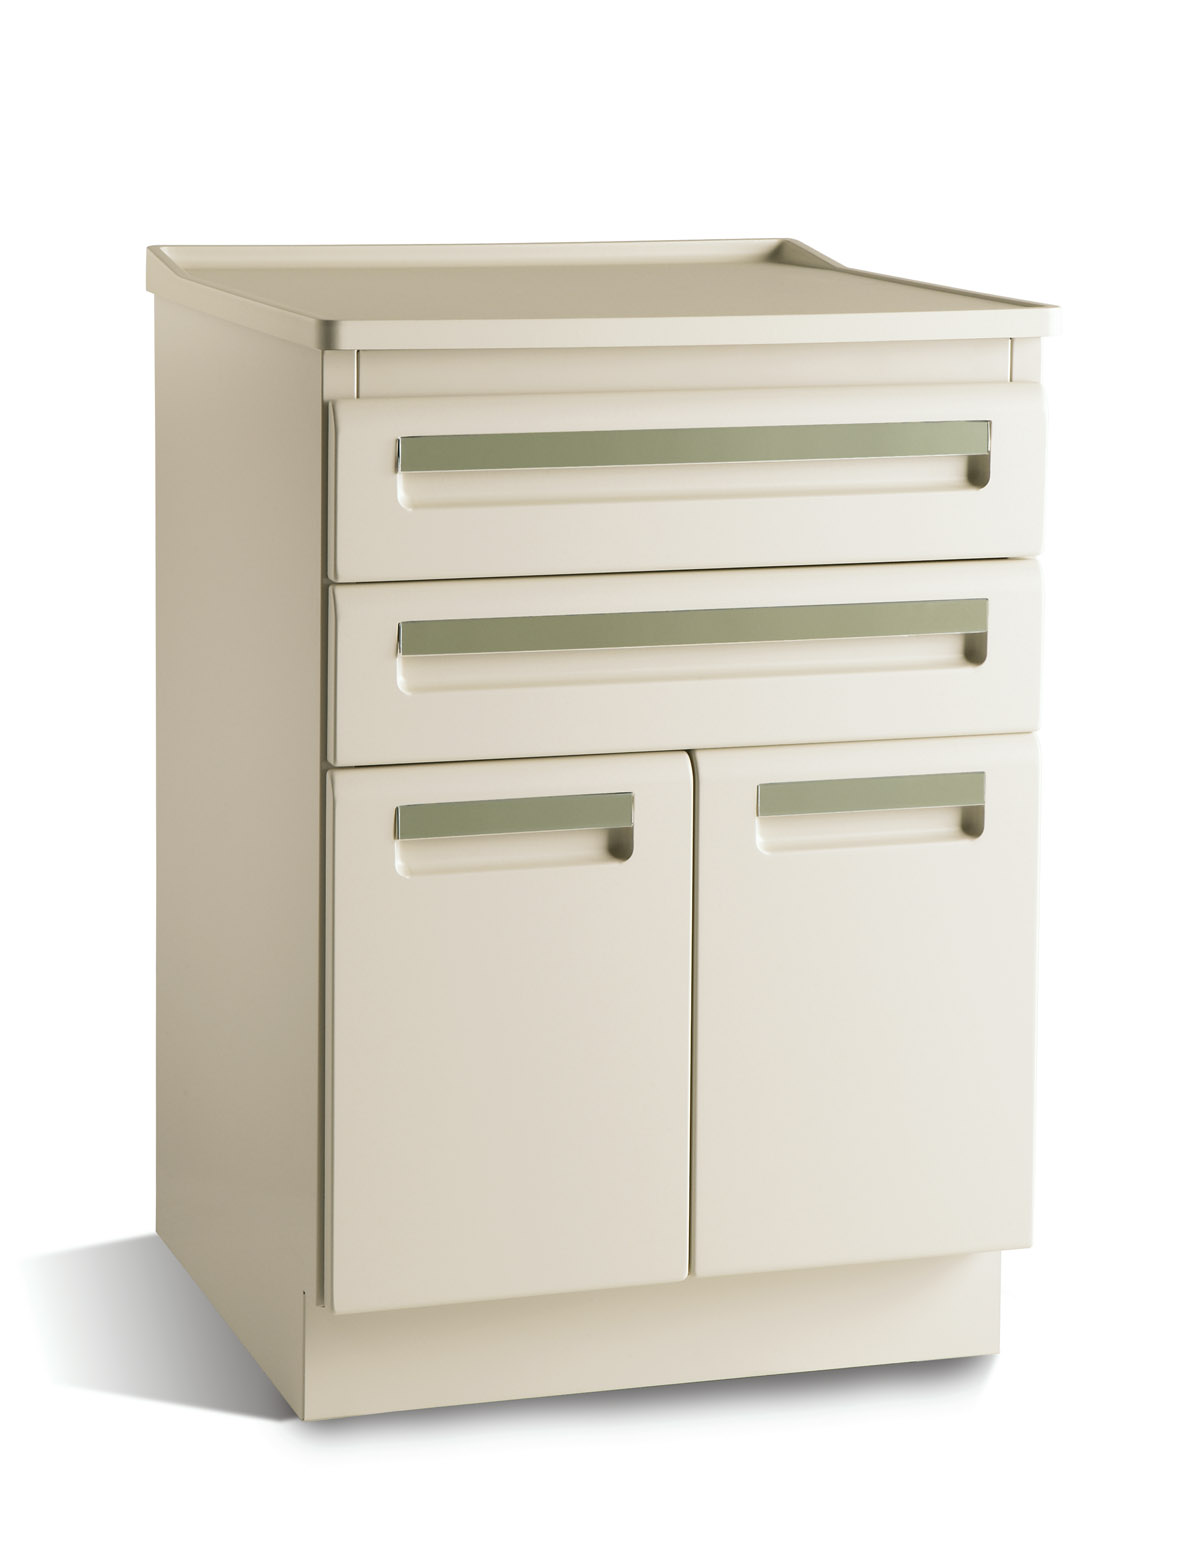 CABINET, TREATMENT, 24x18, 2 DR/2 DRW, GOLDEN ANIGRE